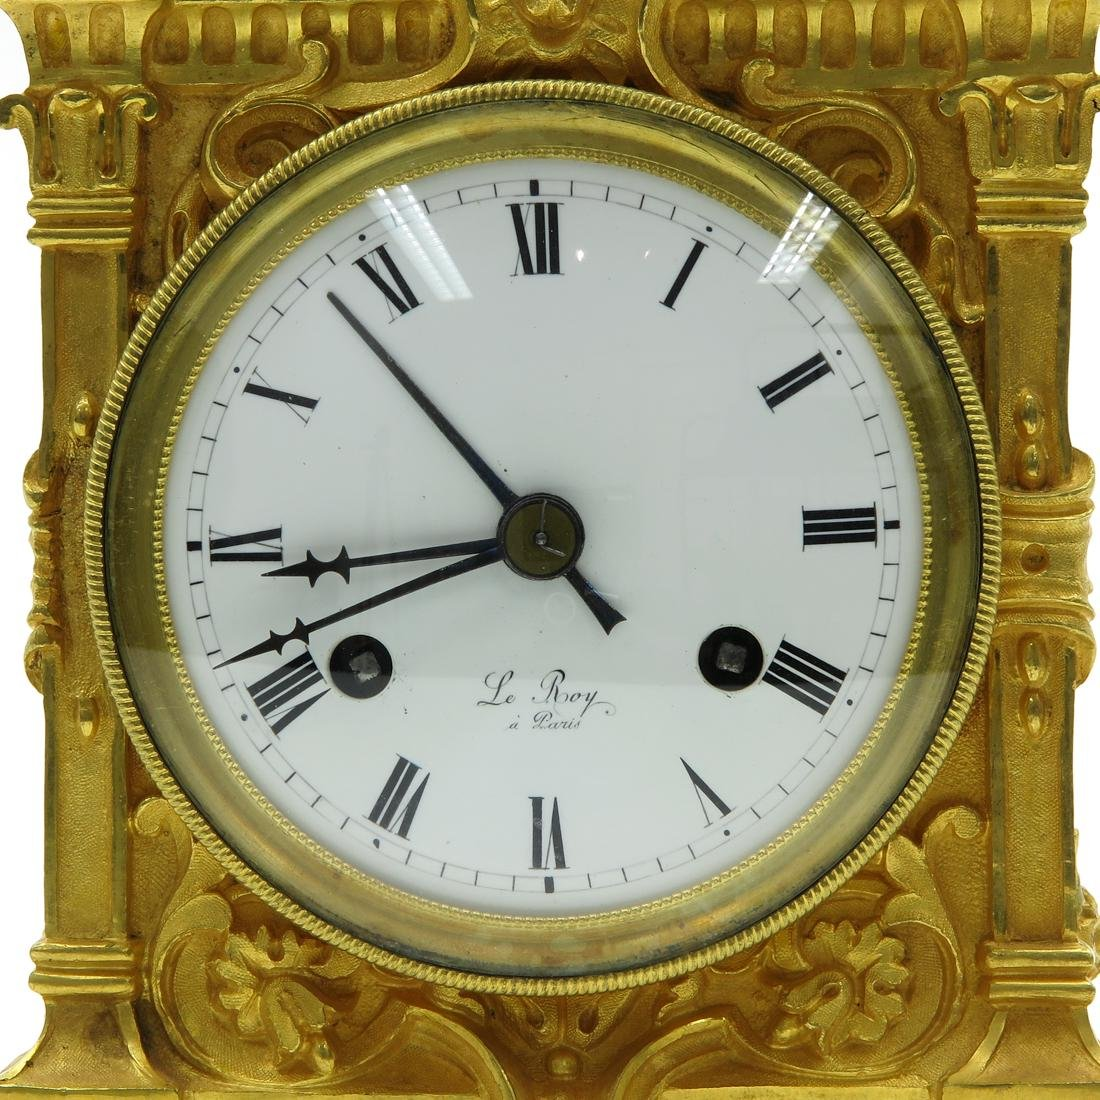 French Officers Clock Circa 1830 Signed Le Roy a Paris - 5